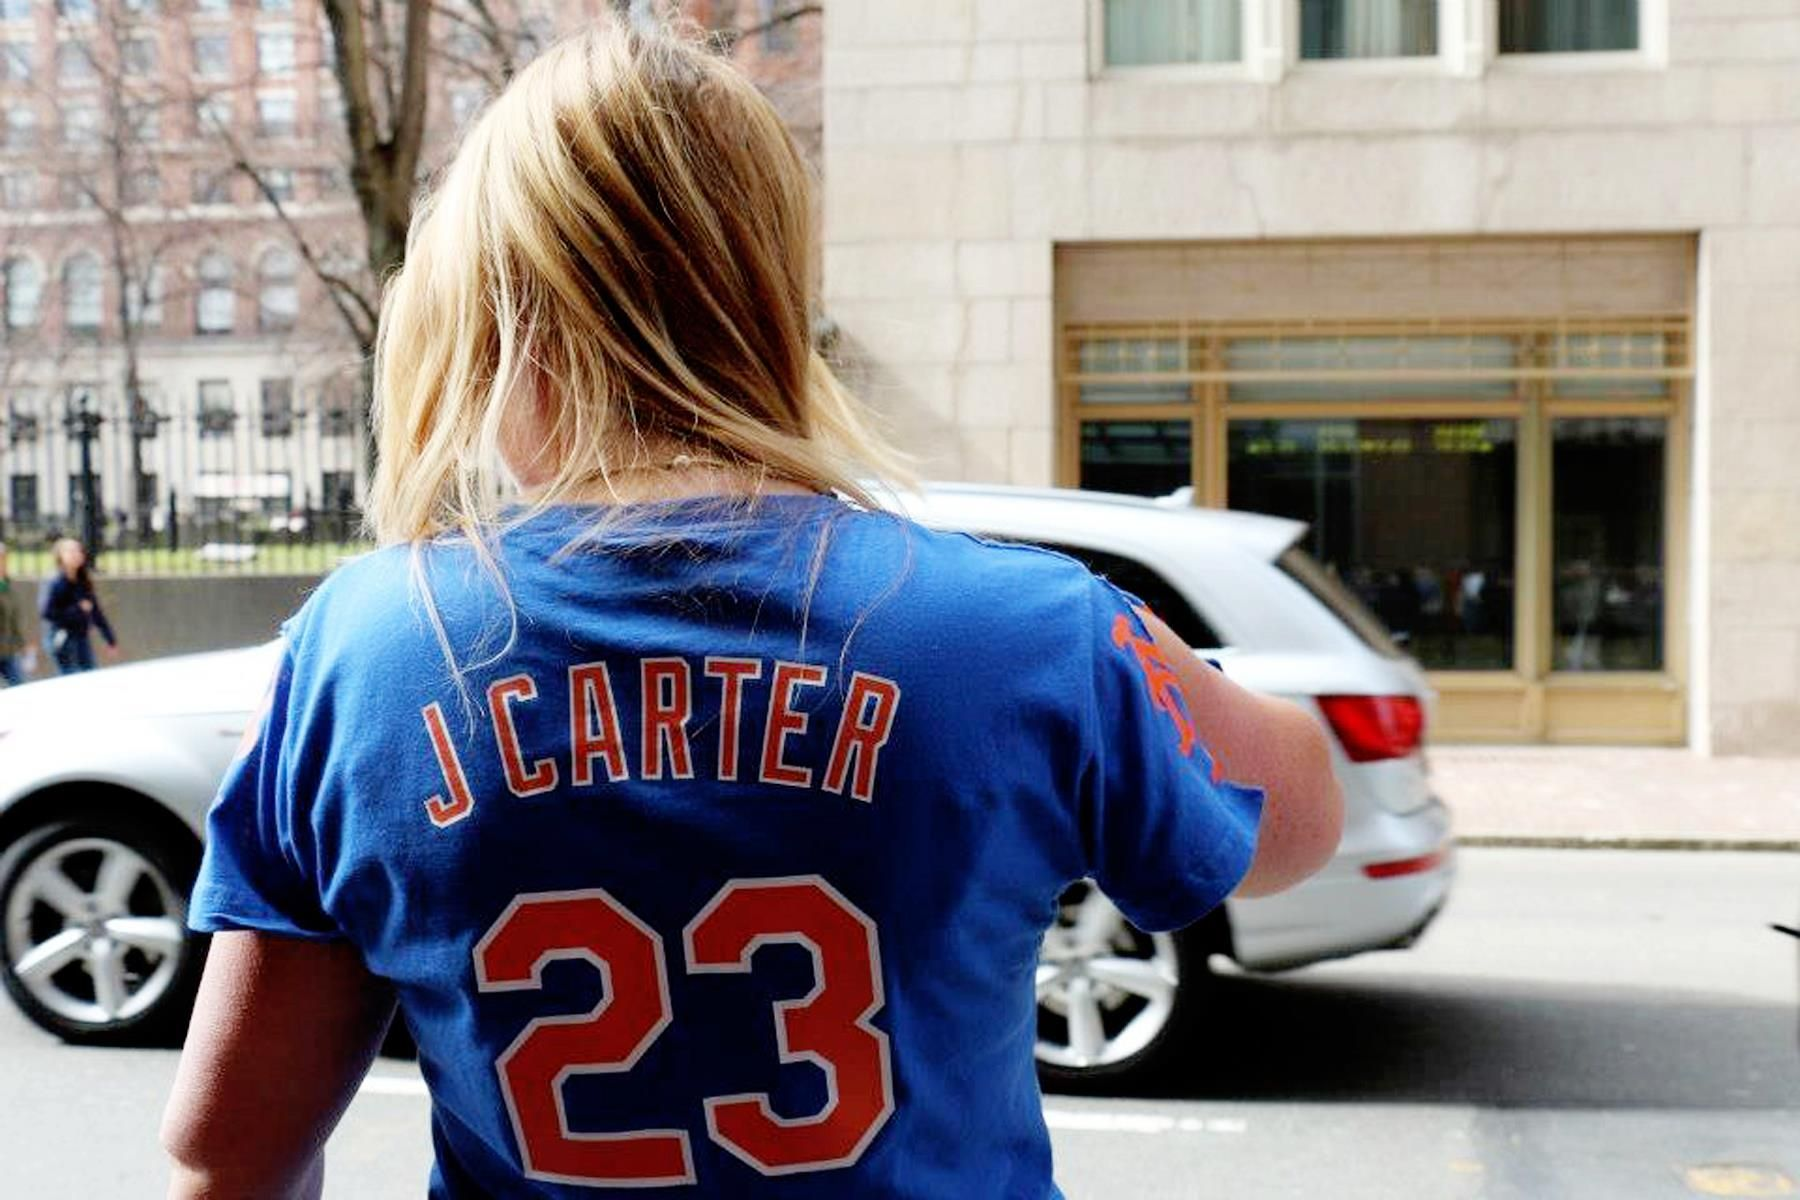 J. Sterling wearing her J. Carter jersey ) Perfect game